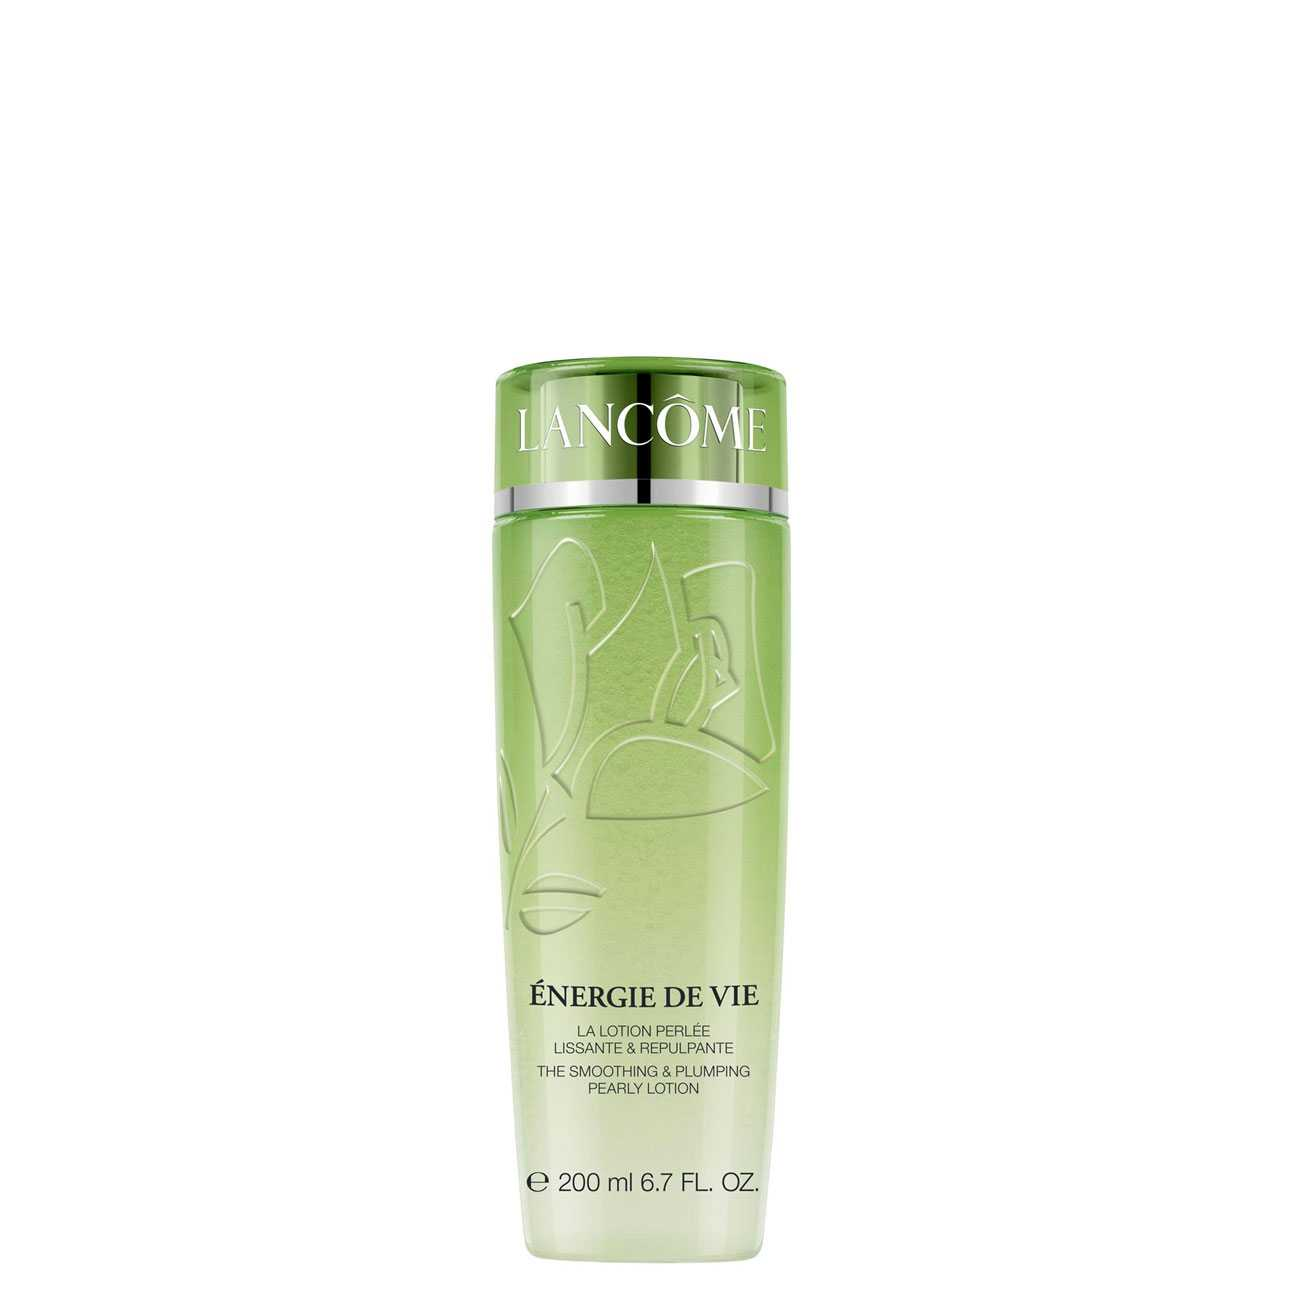 ENERGIE DE VIE PEARLY LOTION 200 ML